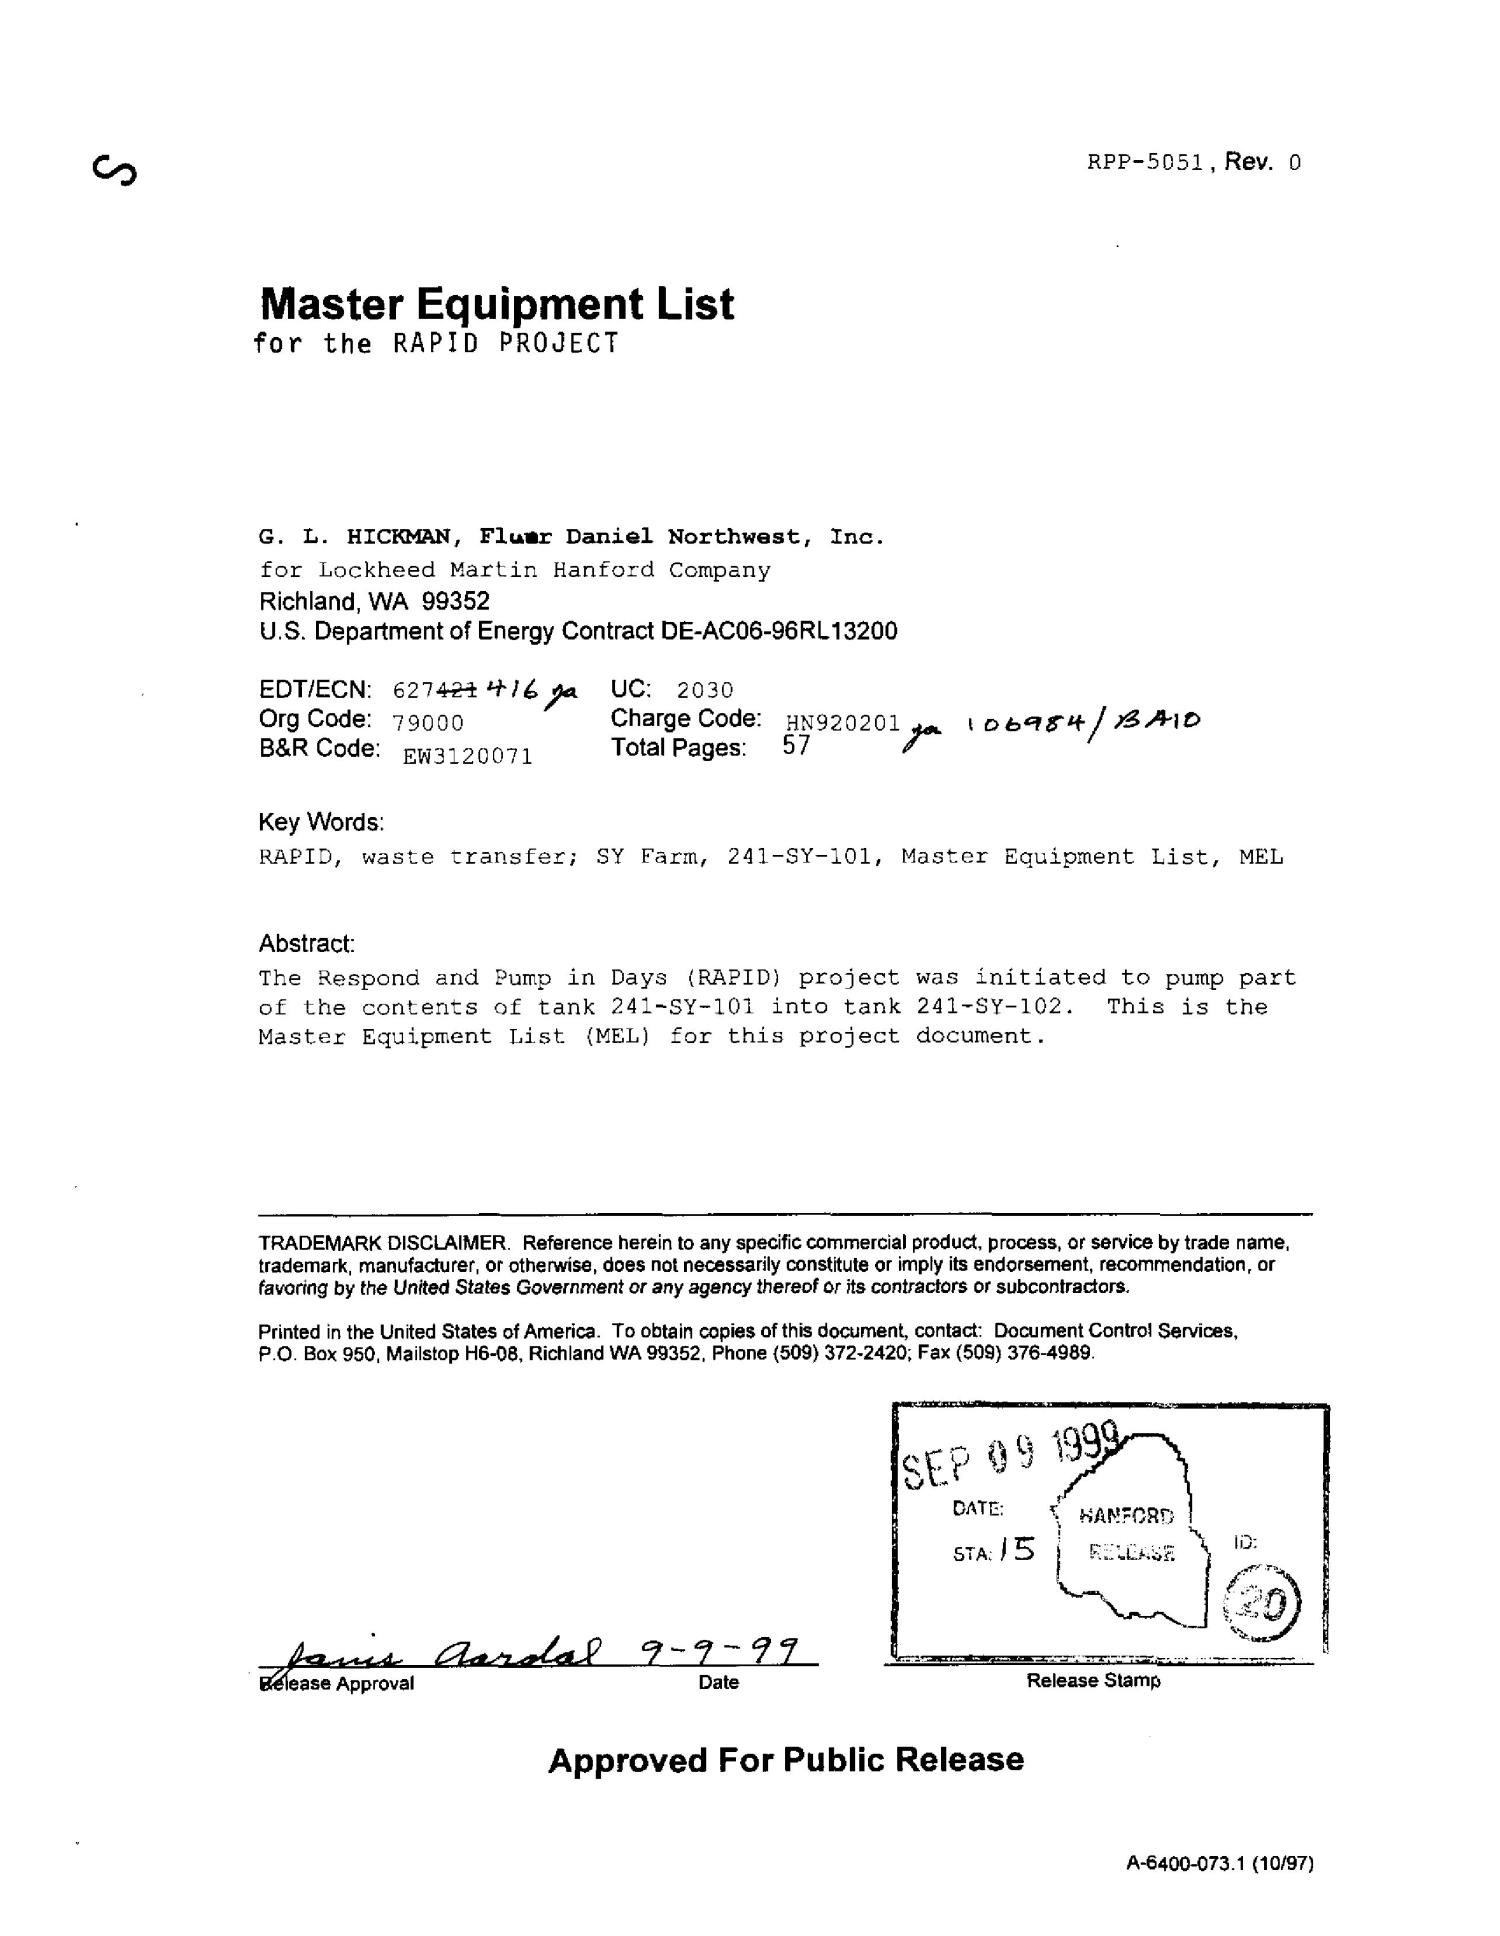 Master Equipment List for the RAPID Project                                                                                                      [Sequence #]: 2 of 58